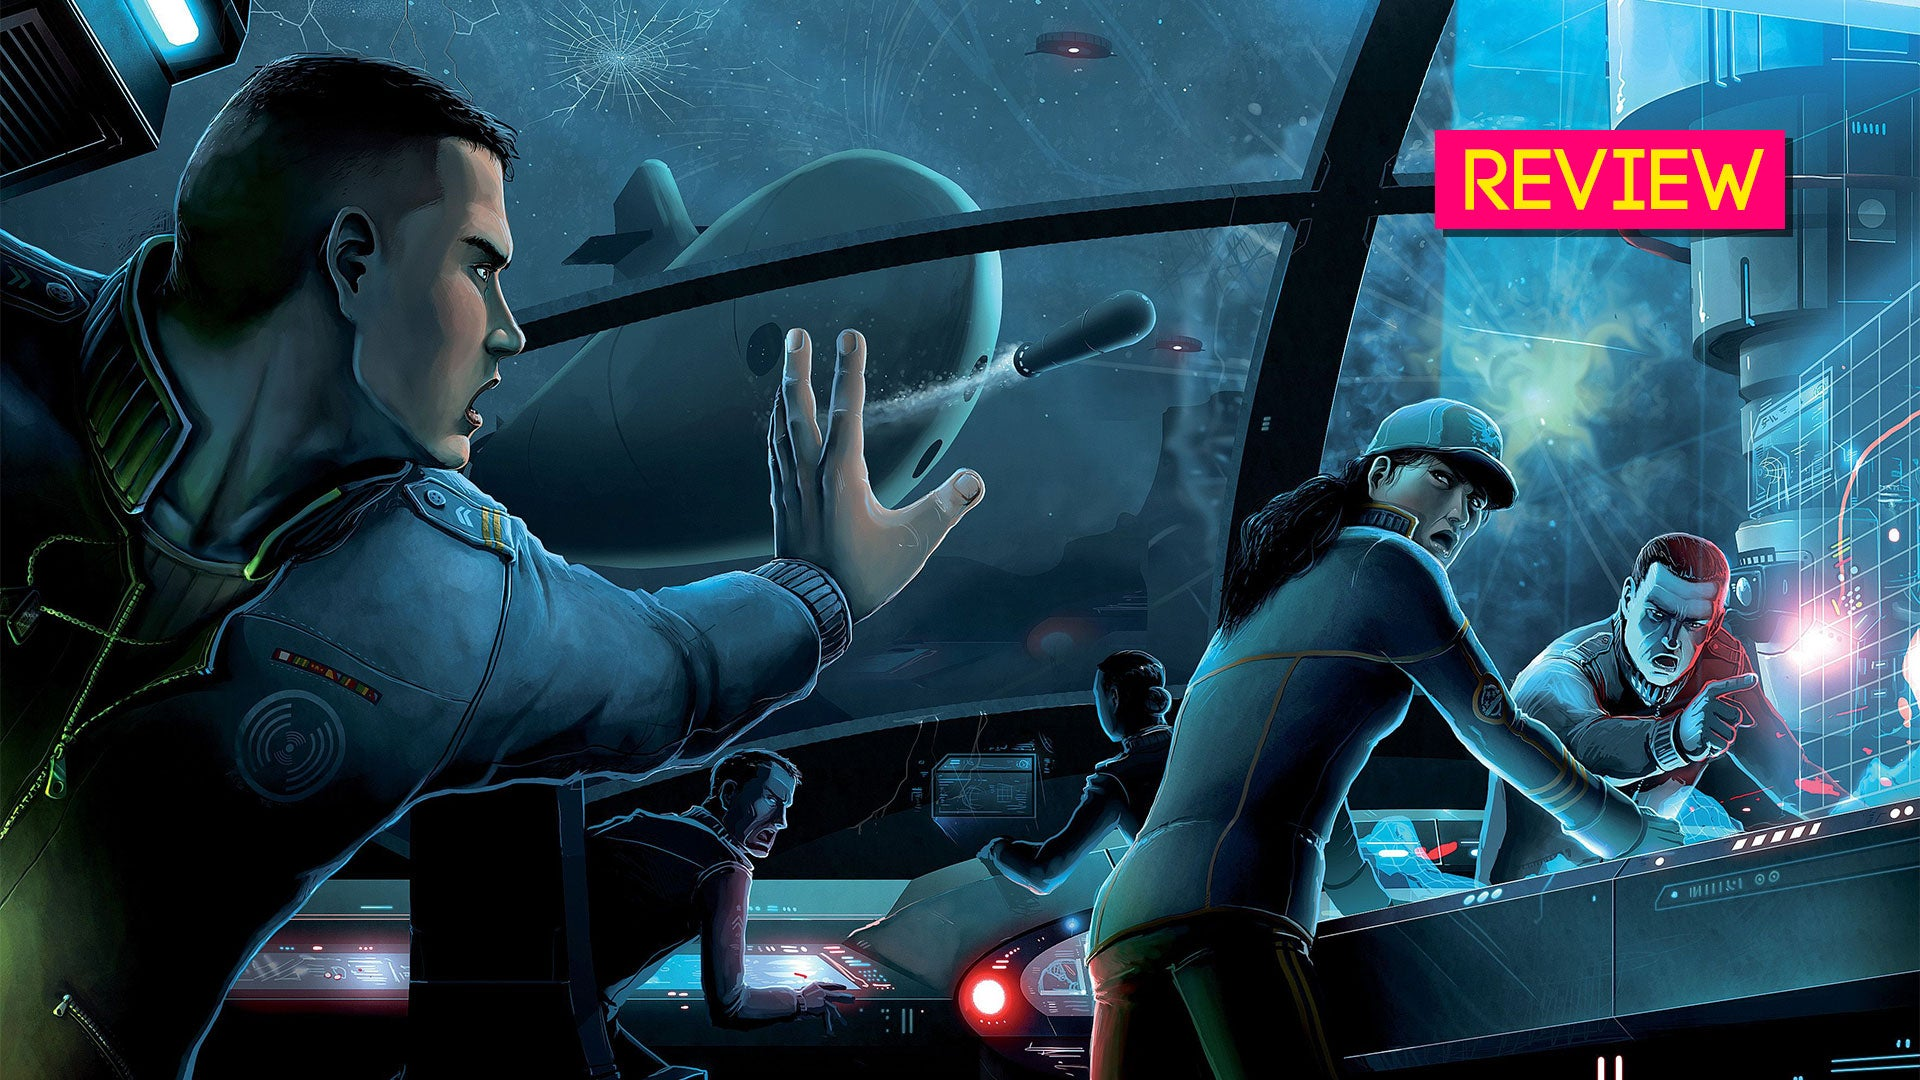 Captain Sonar: The Kotaku Review